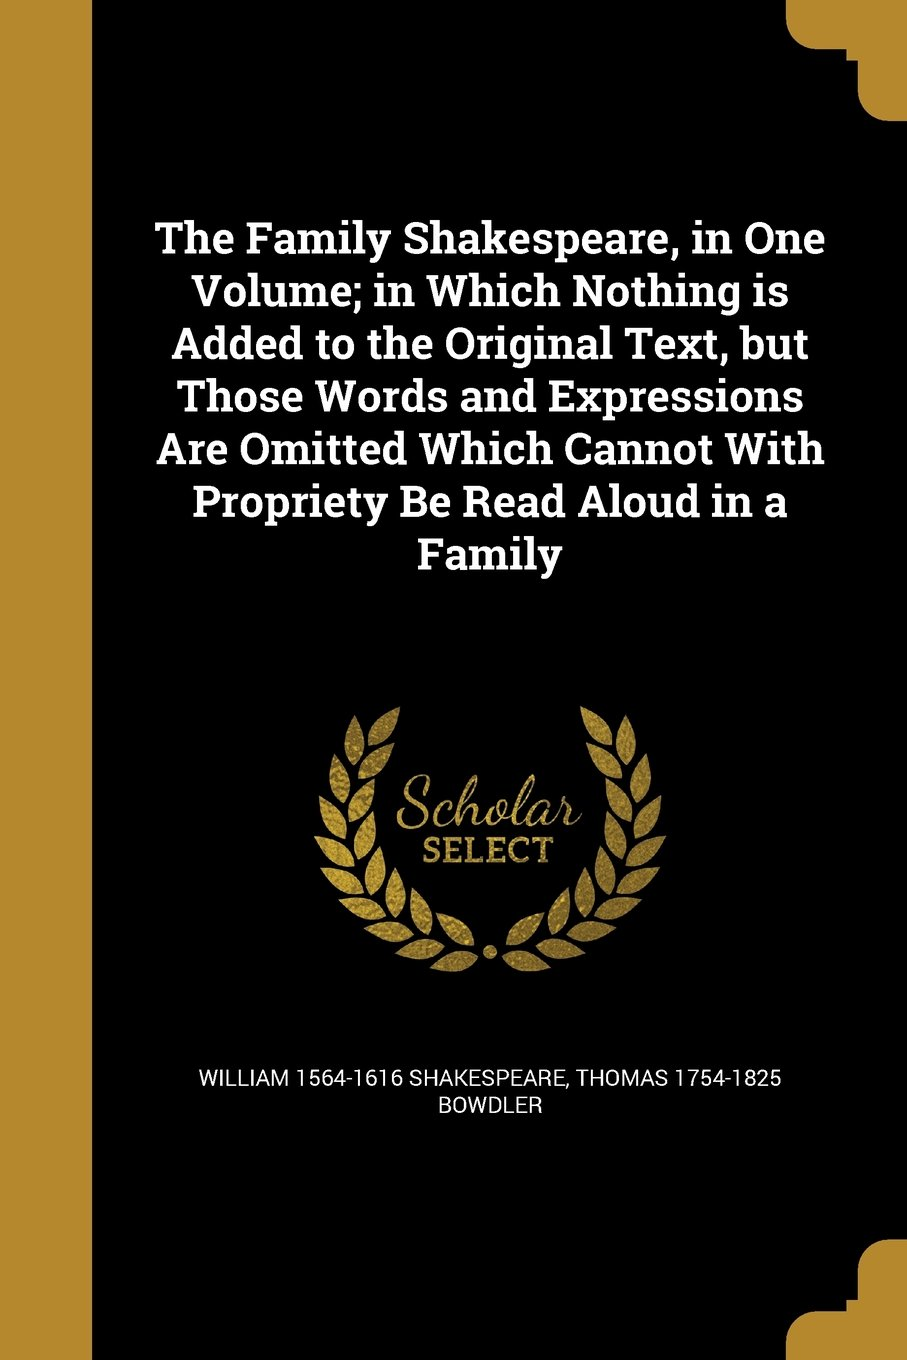 Download The Family Shakespeare, in One Volume; In Which Nothing Is Added to the Original Text, But Those Words and Expressions Are Omitted Which Cannot with Propriety Be Read Aloud in a Family pdf epub